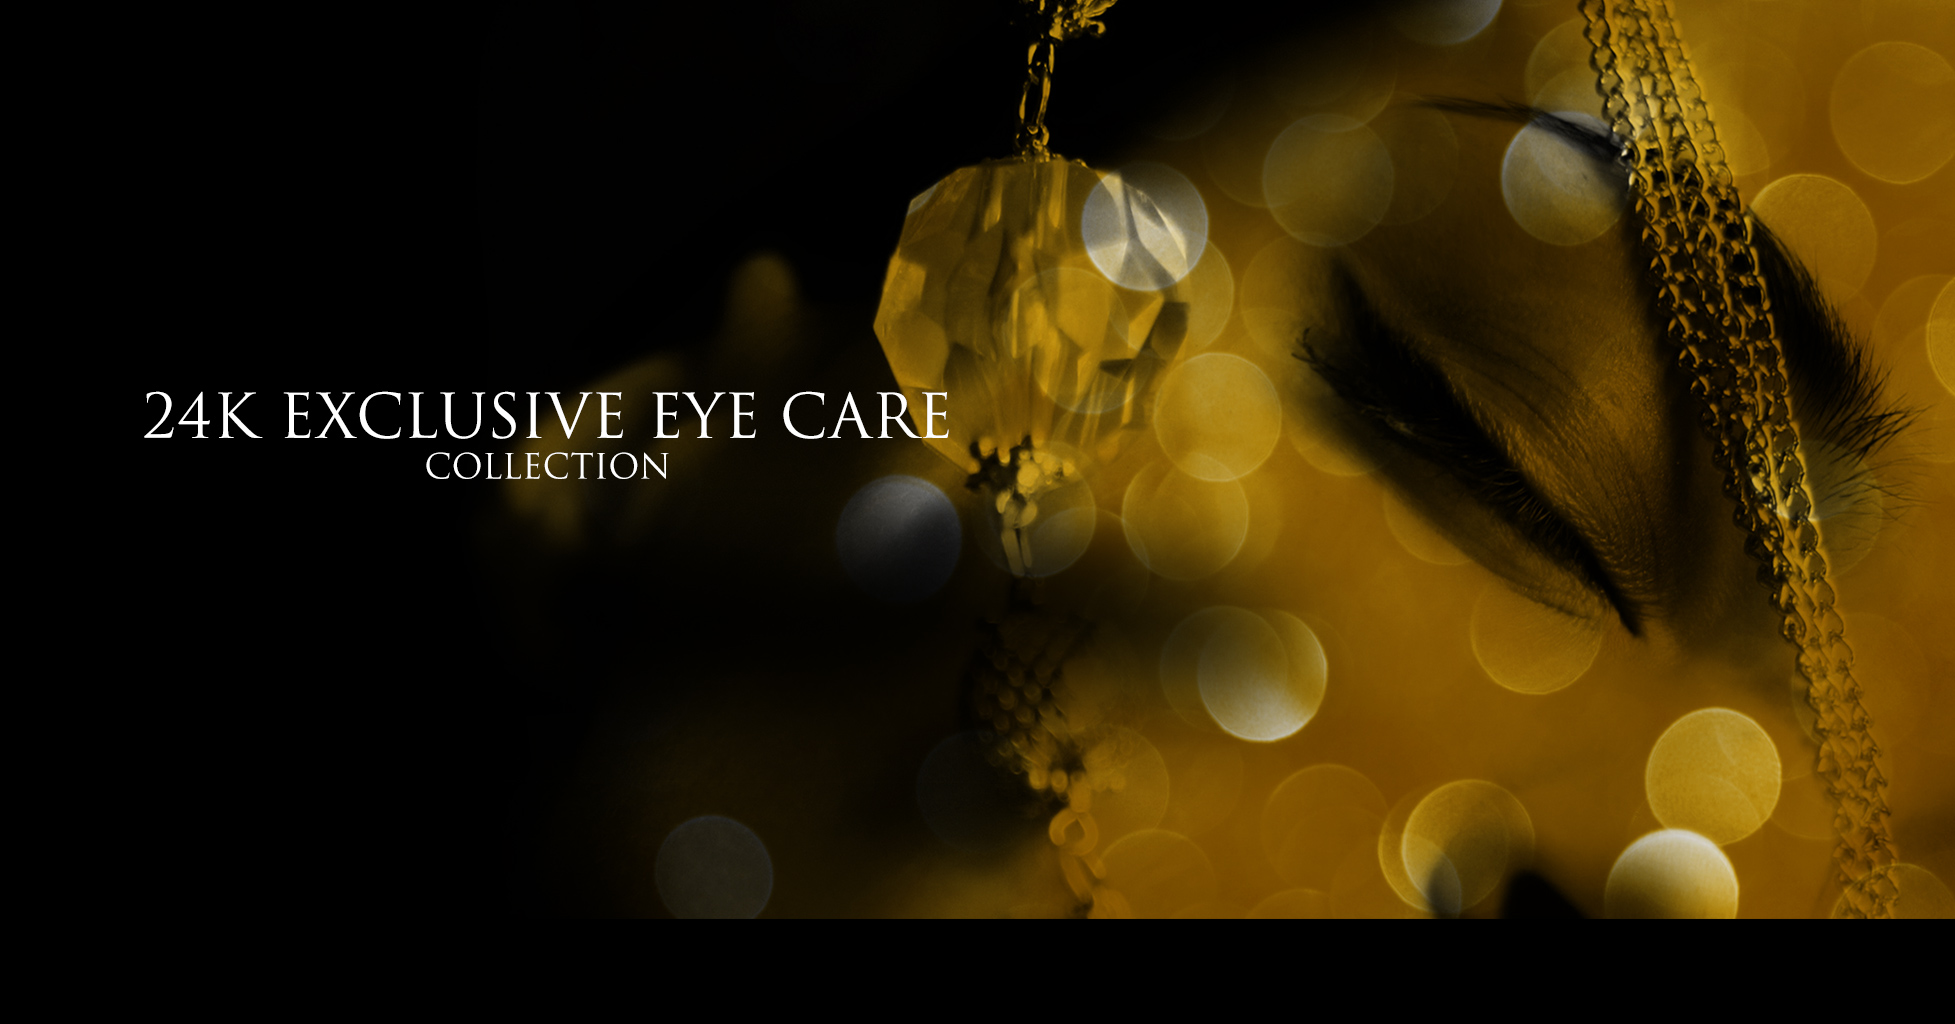 24K Exclusive Eye Care Collection